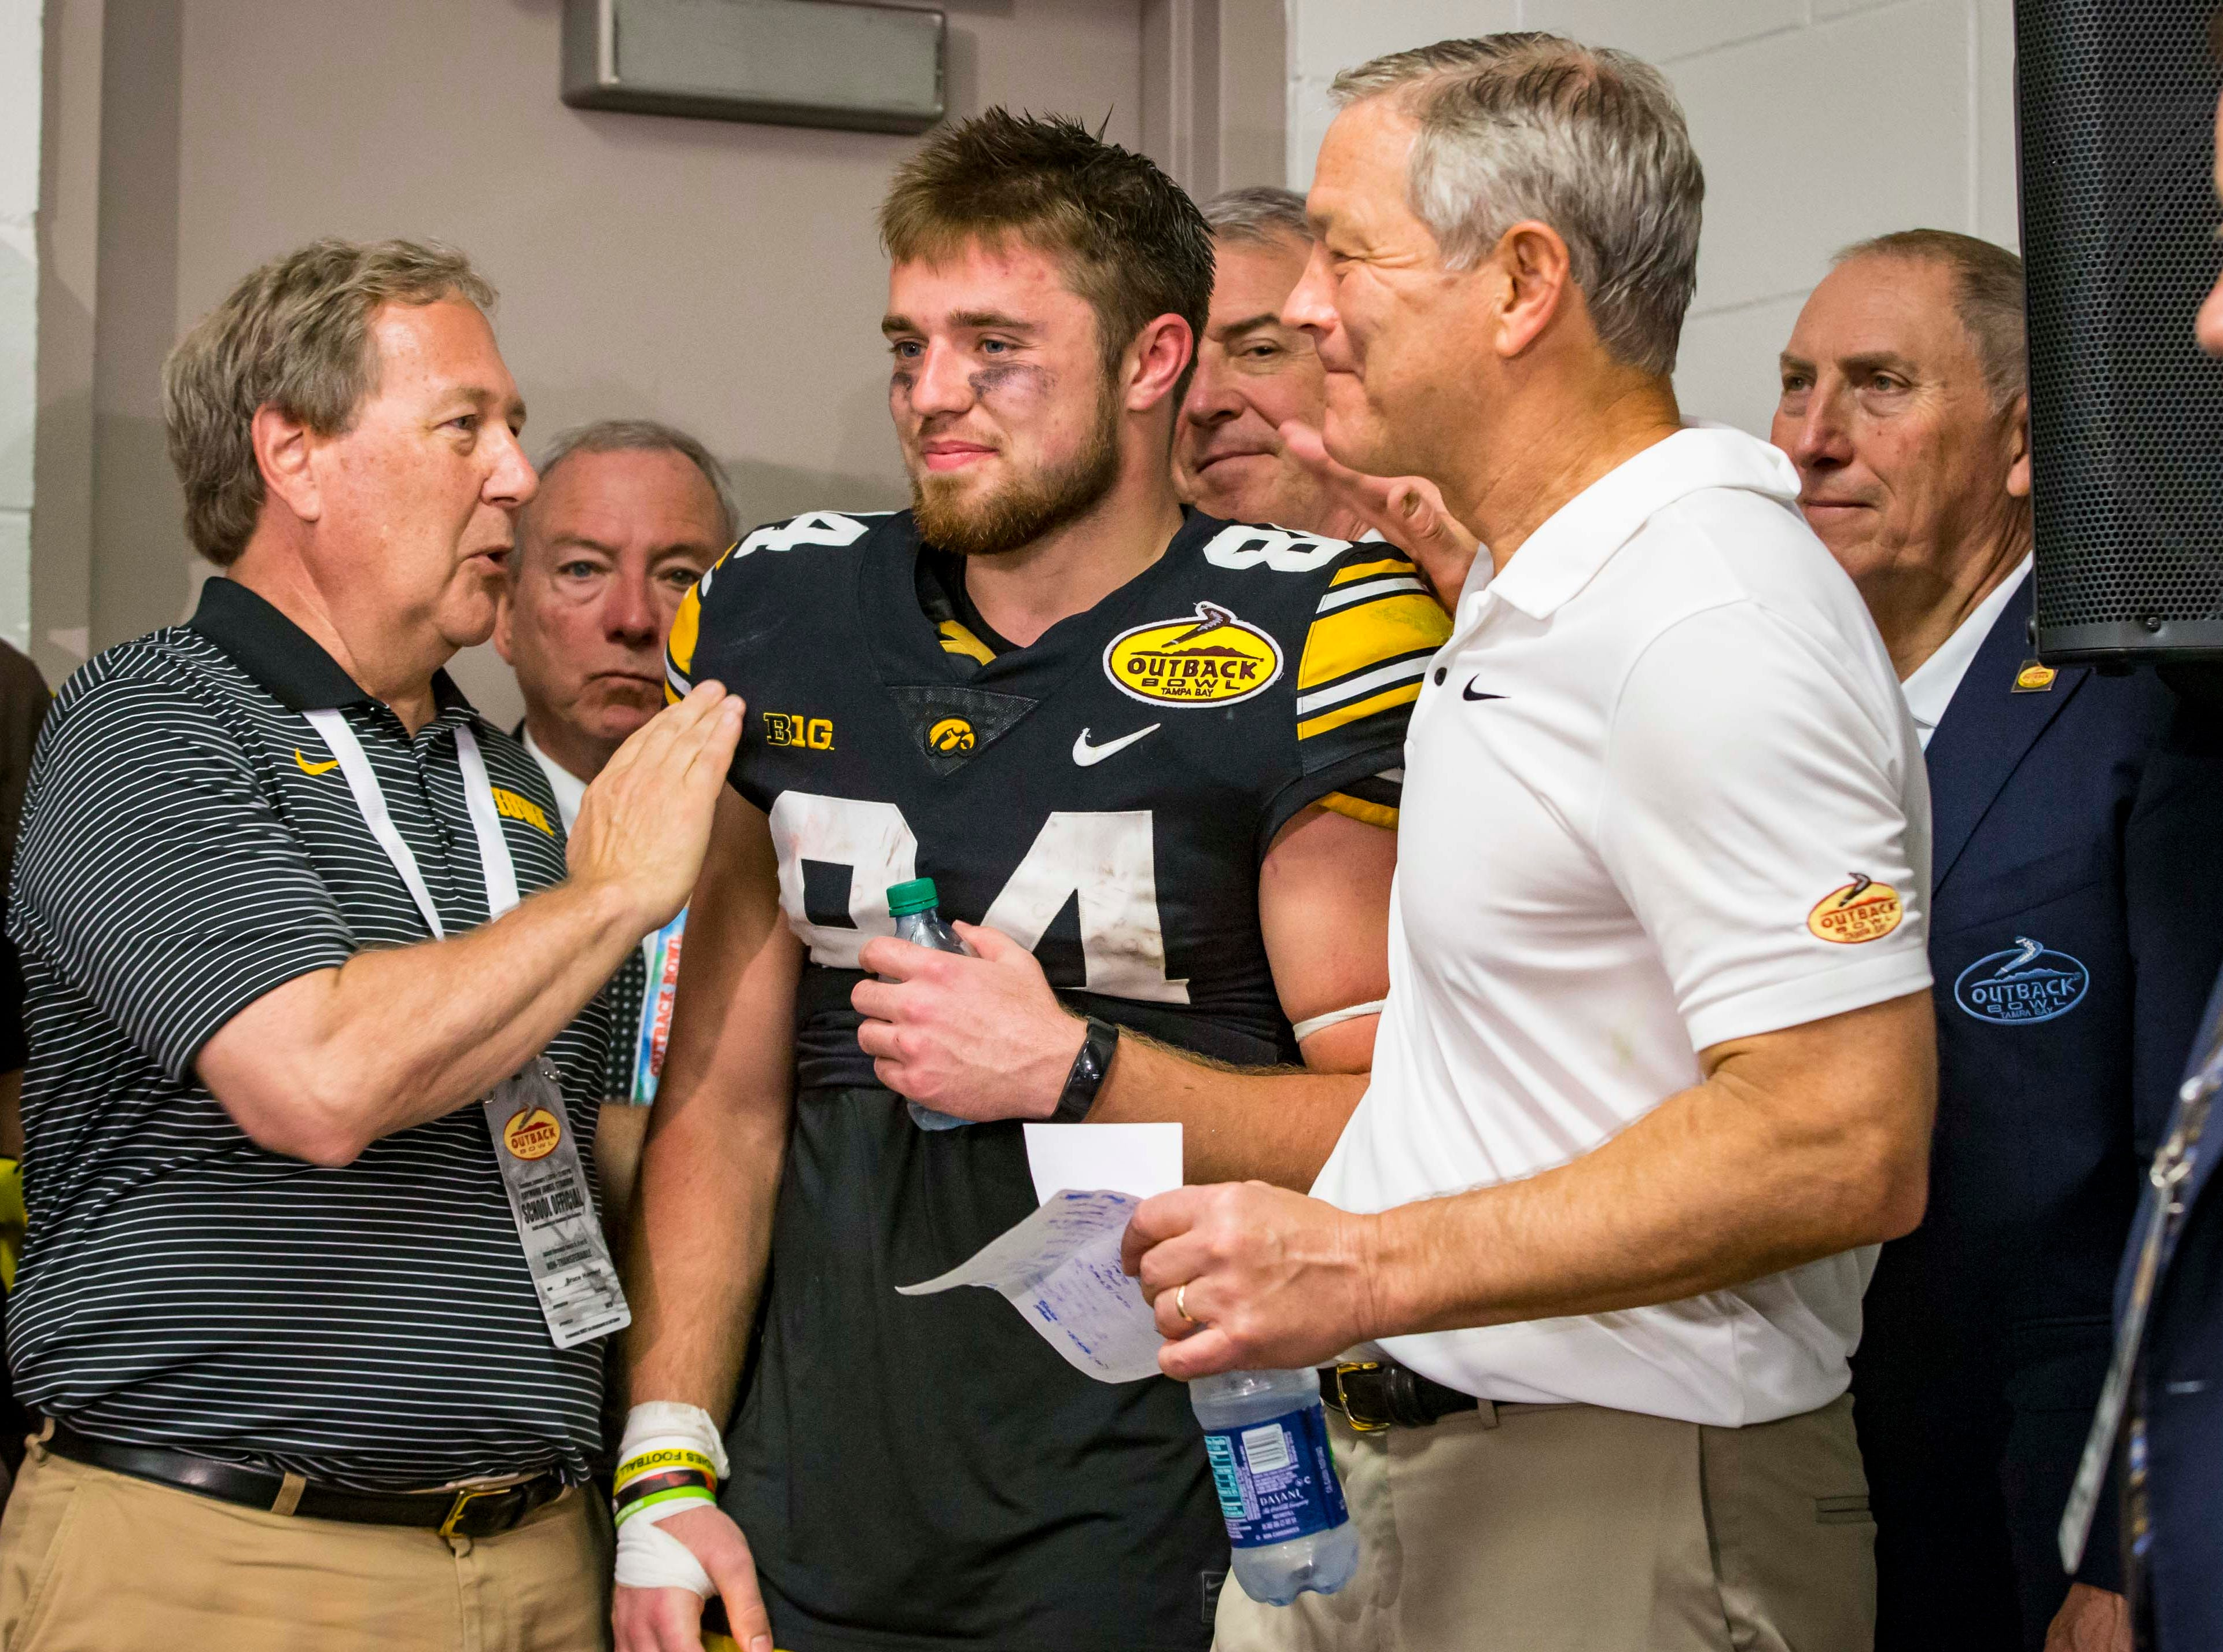 UI President Bruce Harreld, left, and coach Kirk Ferentz , right, congratulate Outback Bowl most valuable player Iowa wide receiver Nick Easley after the Outback Bowl Tues., Jan. 1, 2019, at Raymond James Stadium in Tampa, Florida. Iowa defeated Mississippi State 27-22.